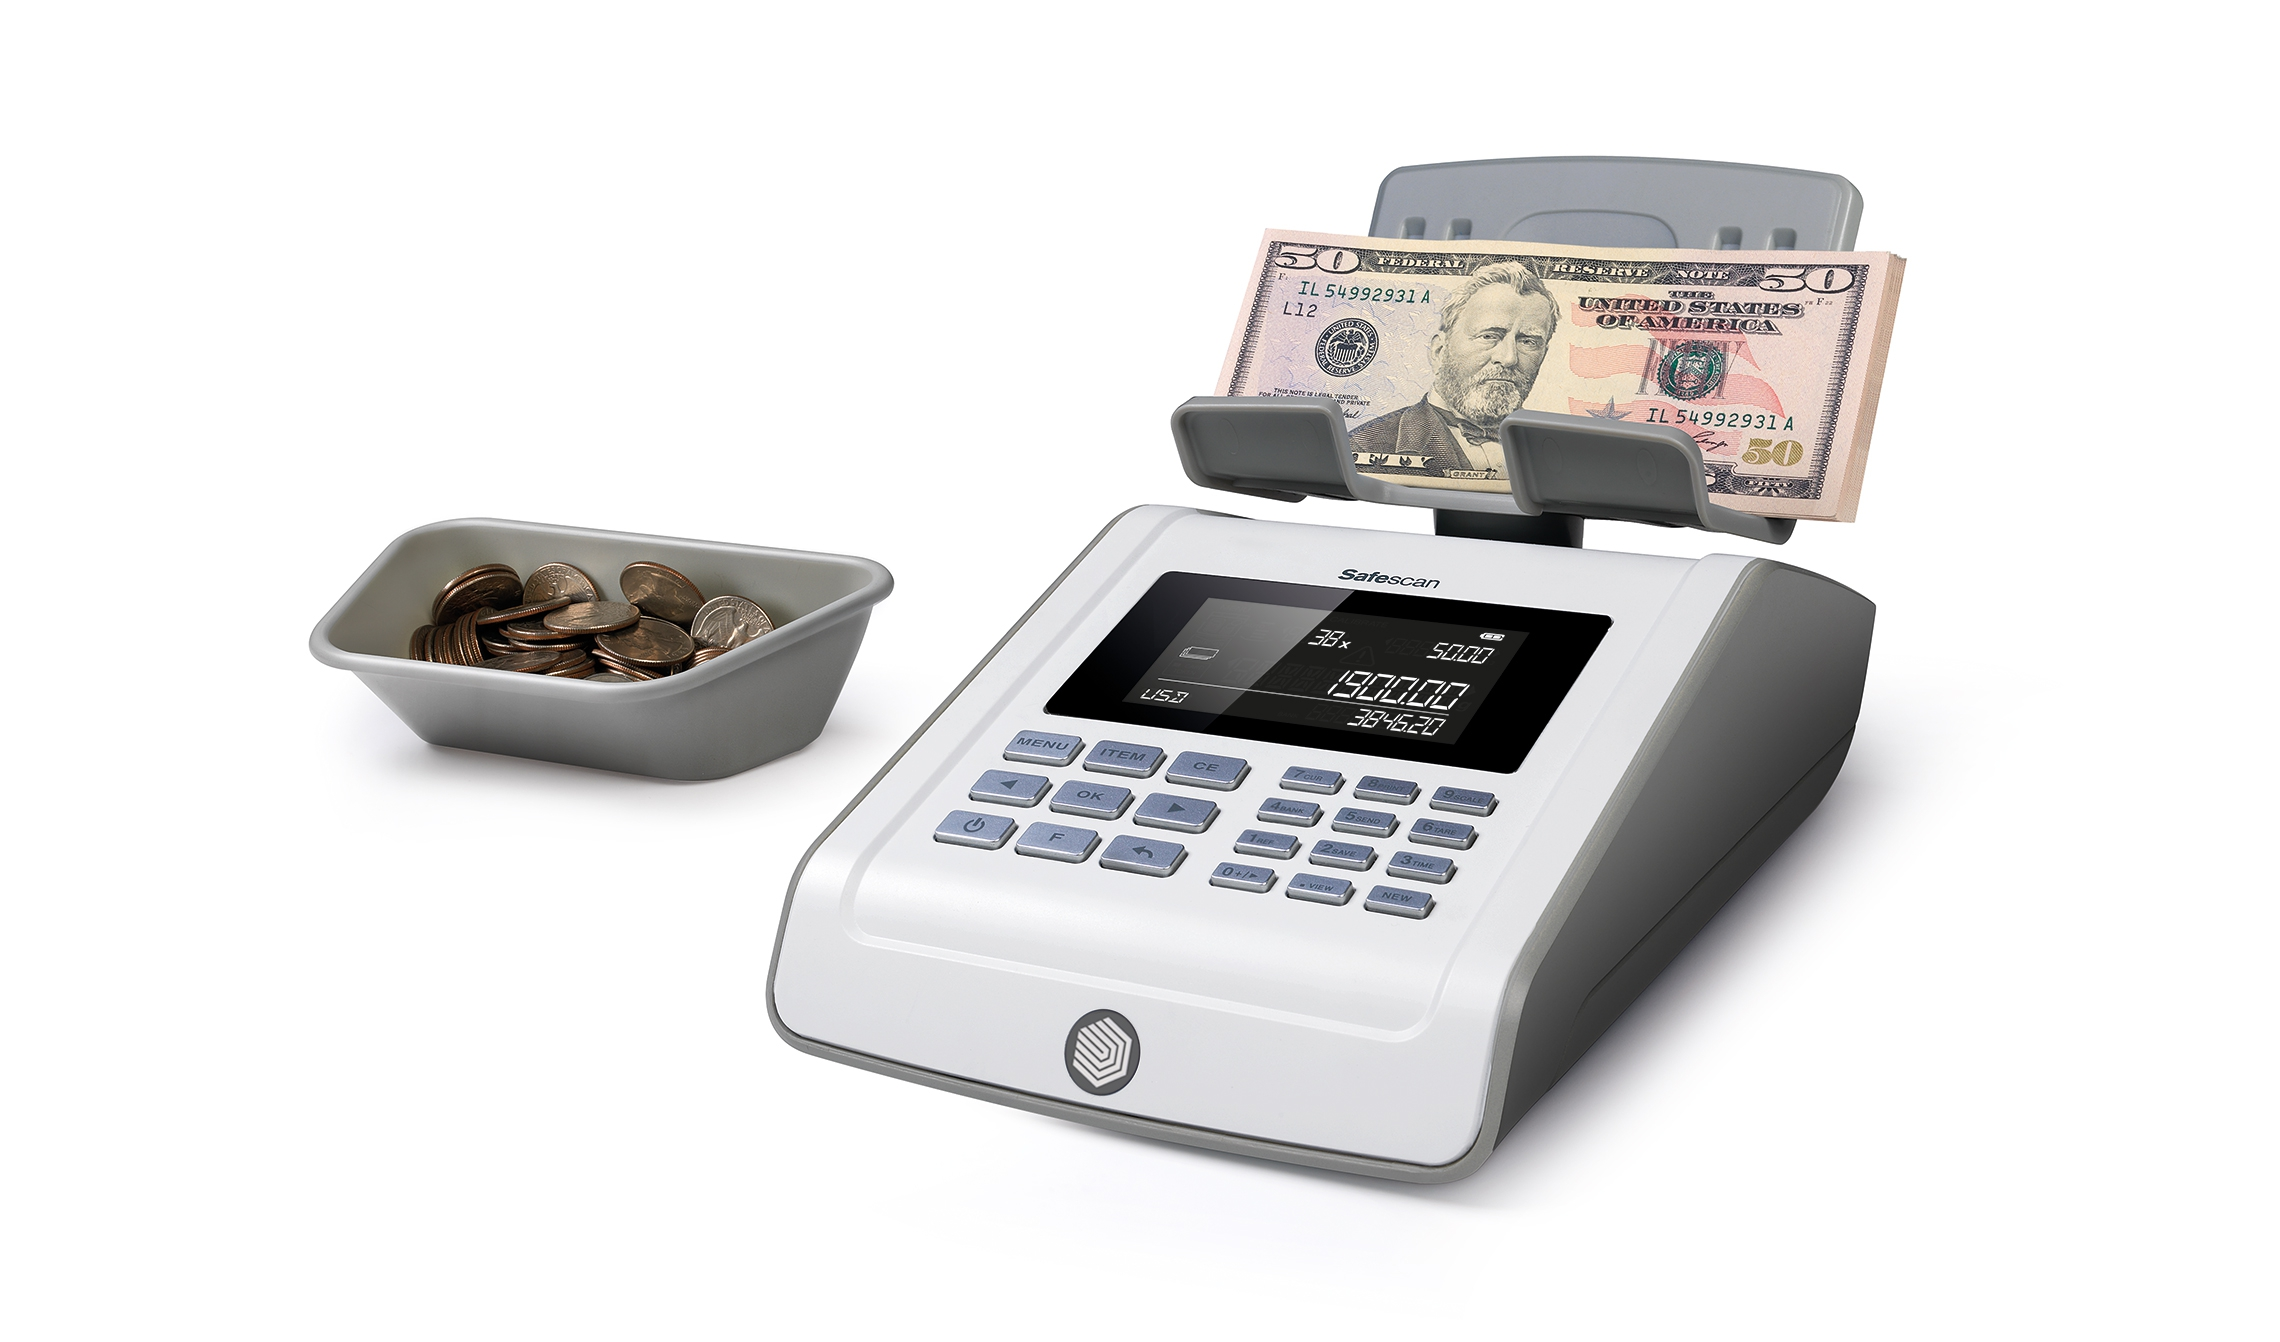 safescan-6185-money-counter